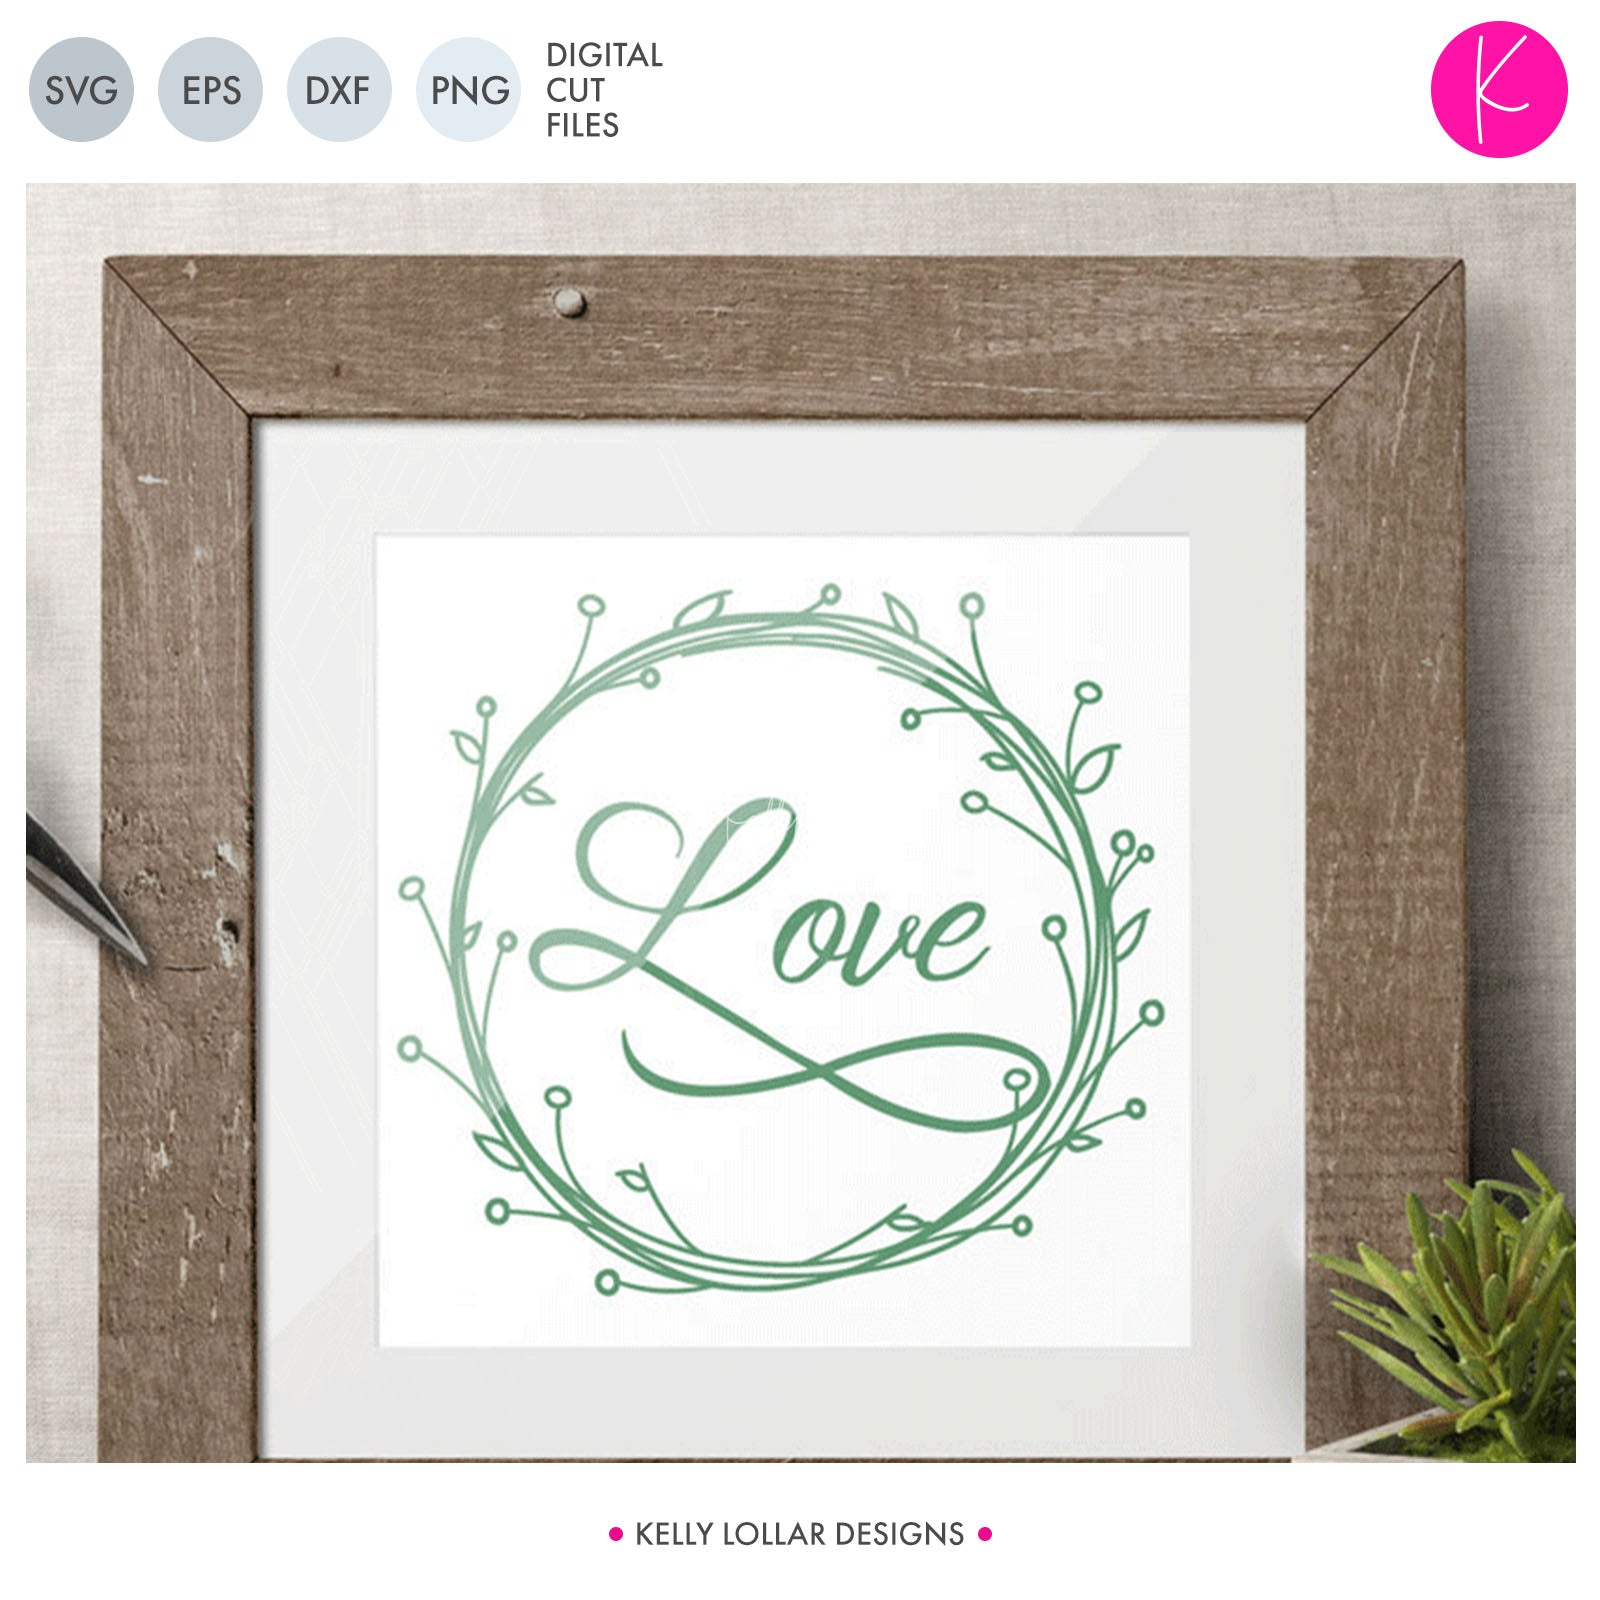 Wreath | SVG DXF EPS PNG Cut Files Hand Sketched Circle Monogram Frame with Leaves and Blooms for Monograms, Names and Quotes | SVG DXF EPS PNG Cut Files This versatile floral wreath svg has so many applications